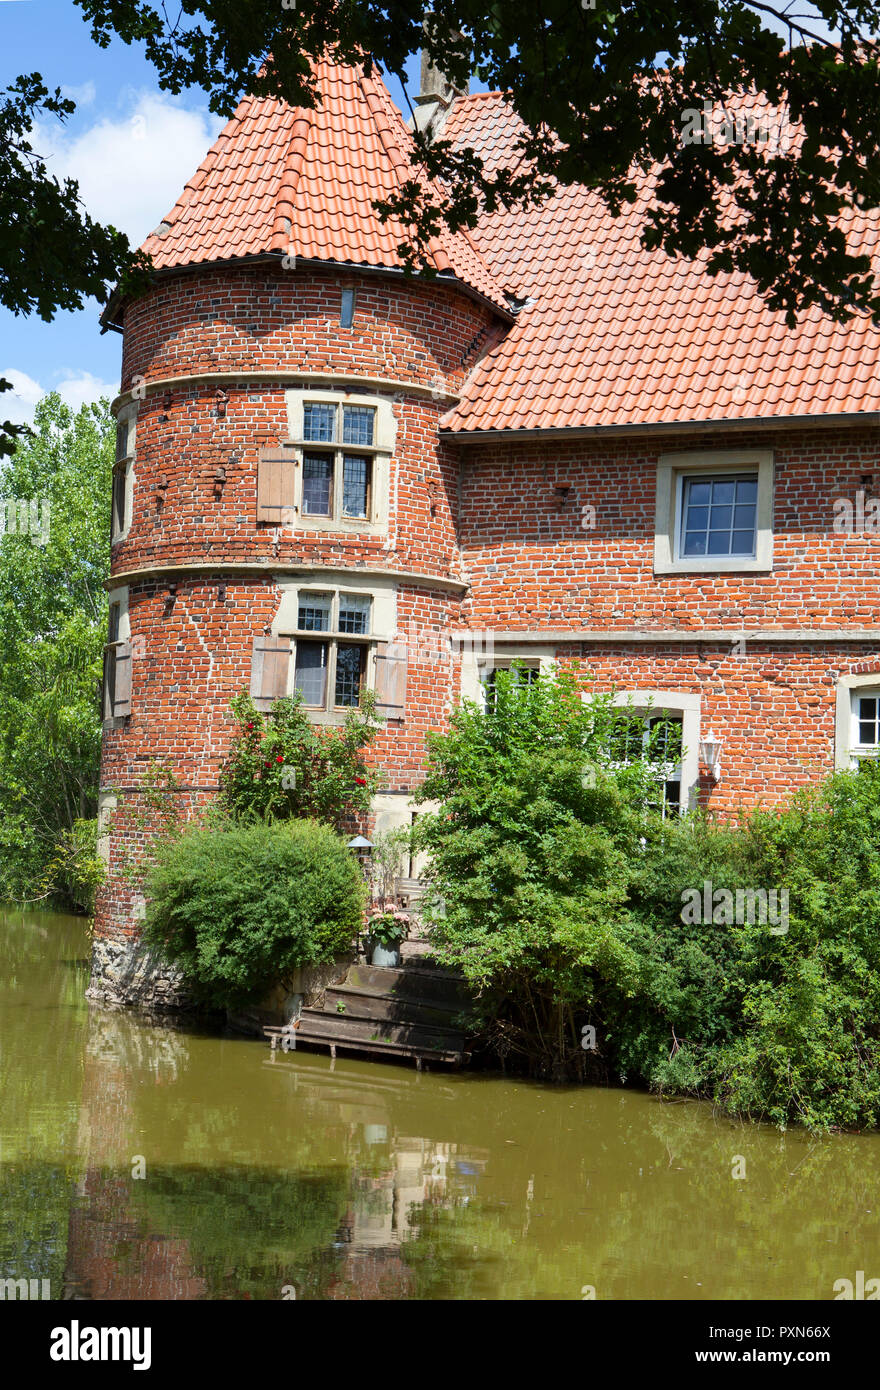 Vögeding, moated castle, North Rhine-Westphalia, Münster-Nienberge, Germany; Europe - Stock Image